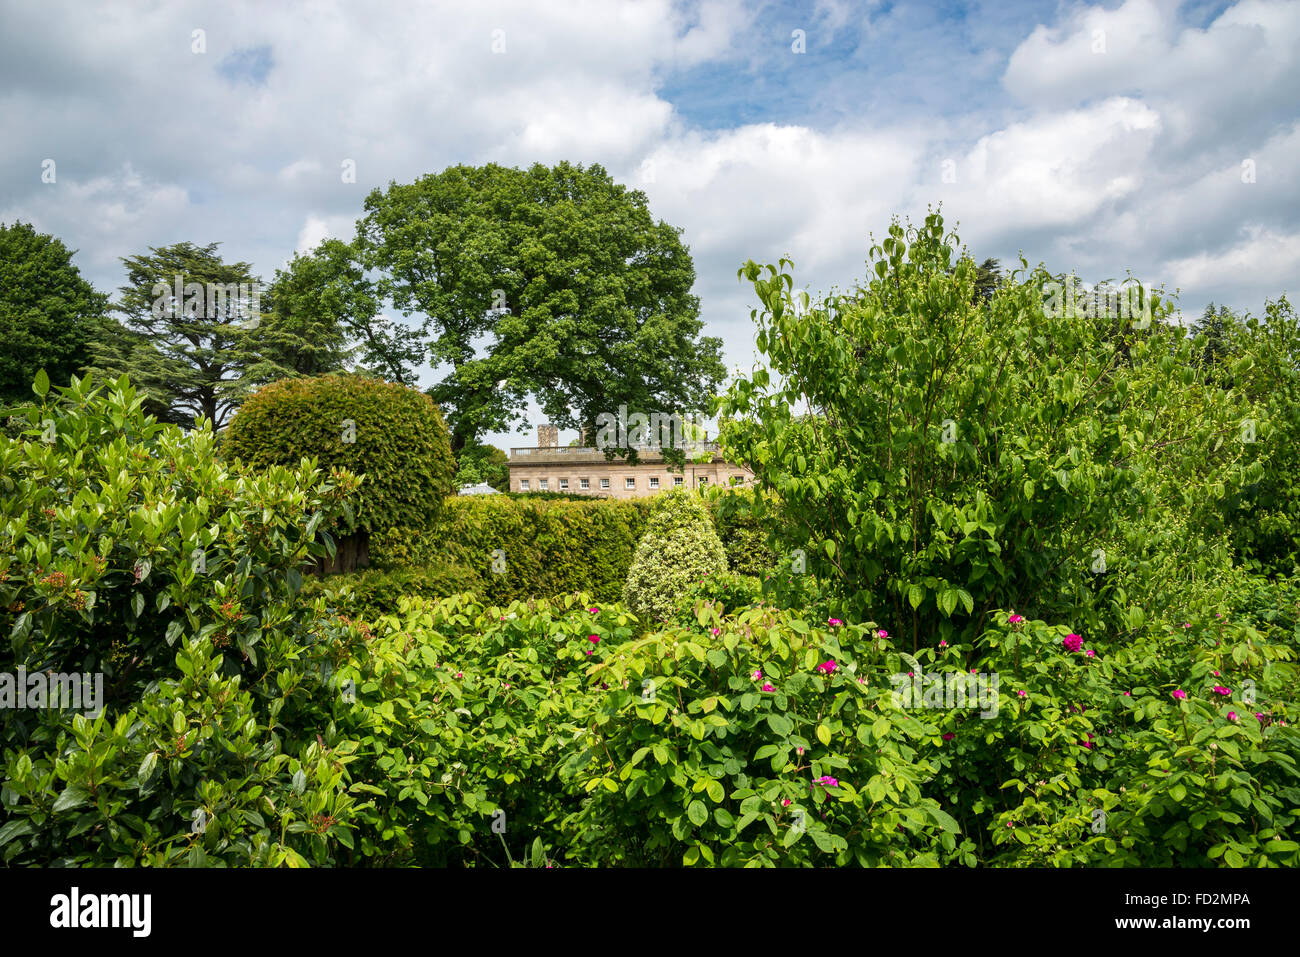 Wentworth castle house seen through lush summer greenery in the gardens. - Stock Image